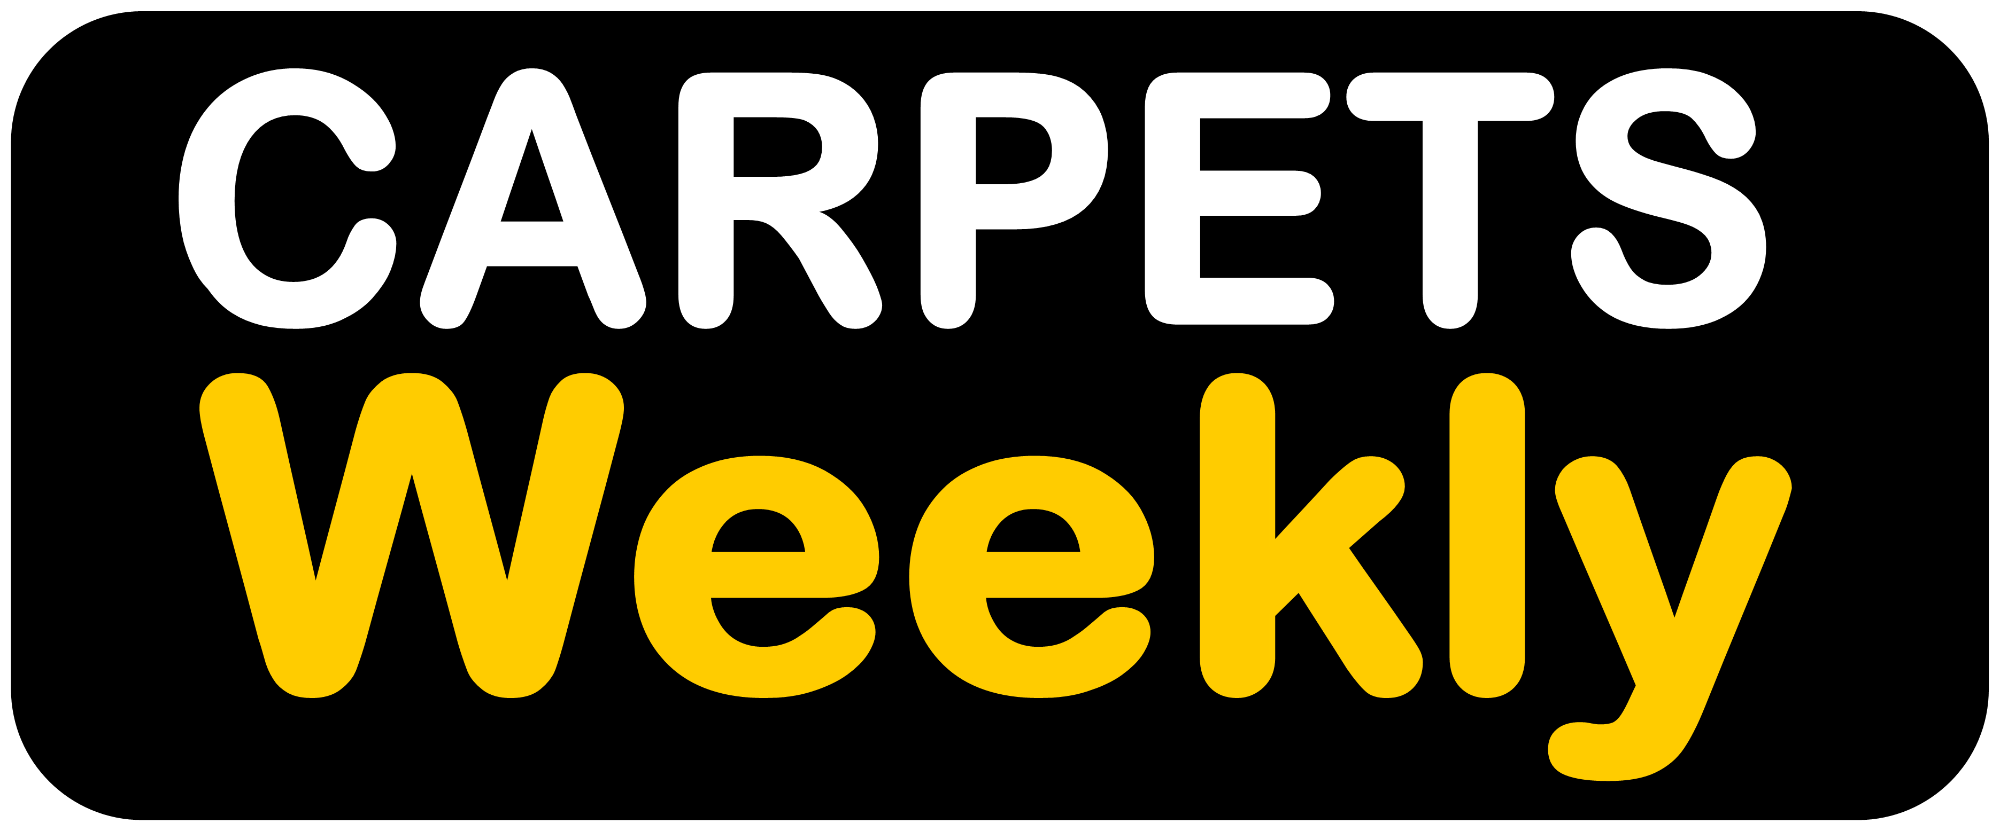 Buy Carpets and Vinyls pay weekly from Carpets Weekly